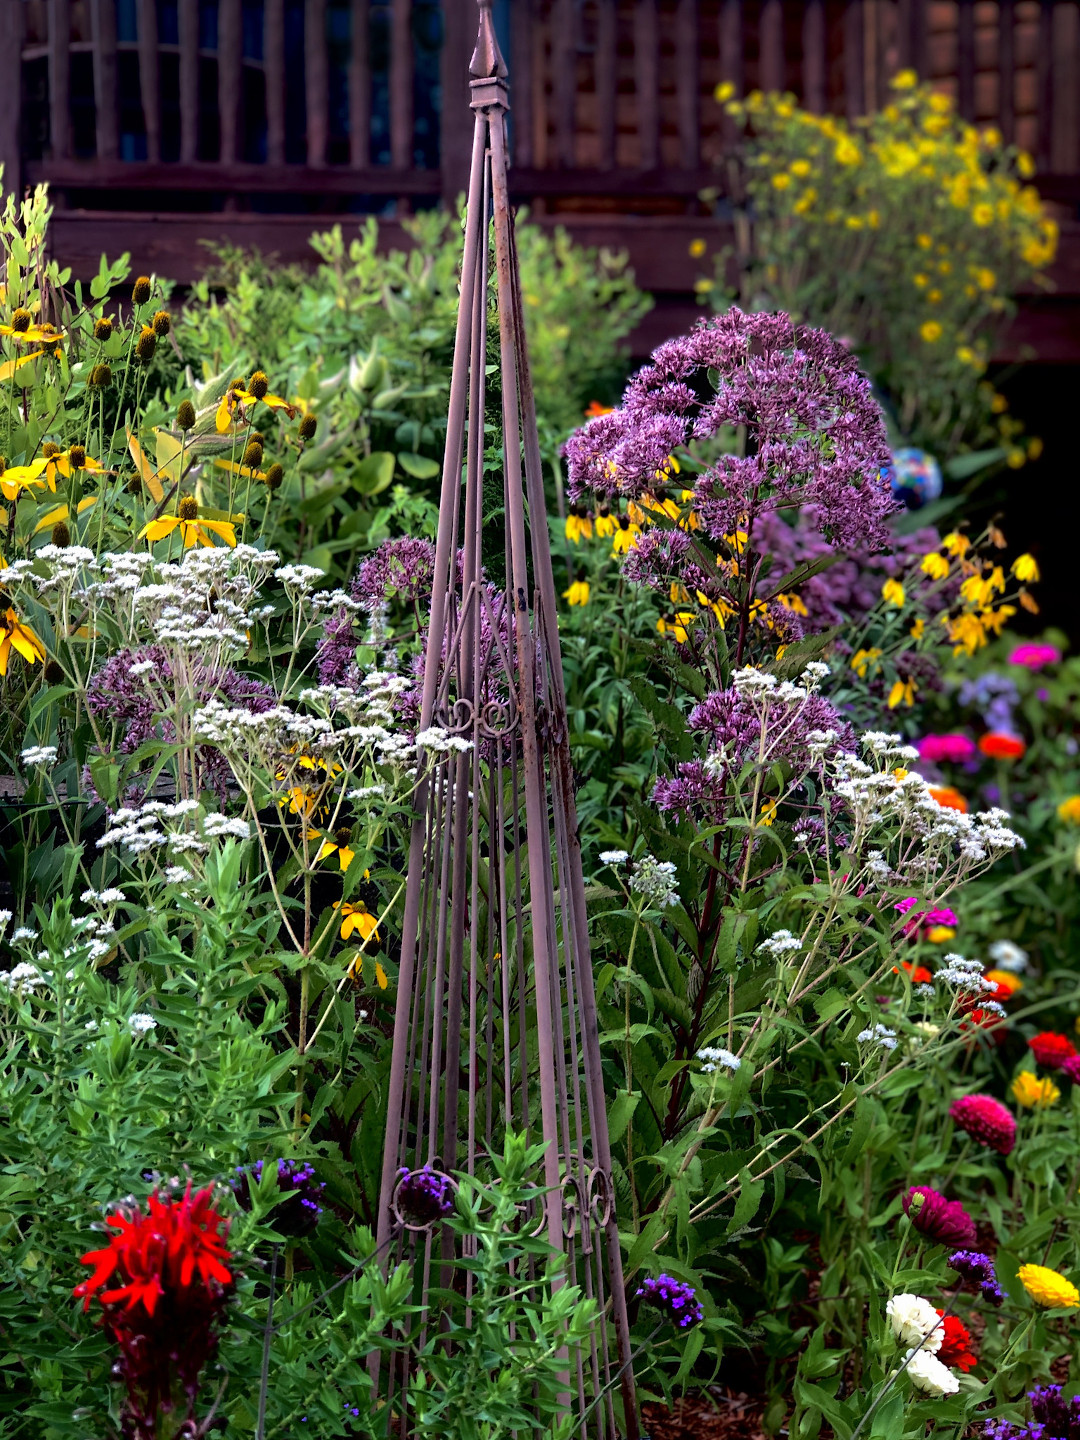 native perennials mixed with annuals